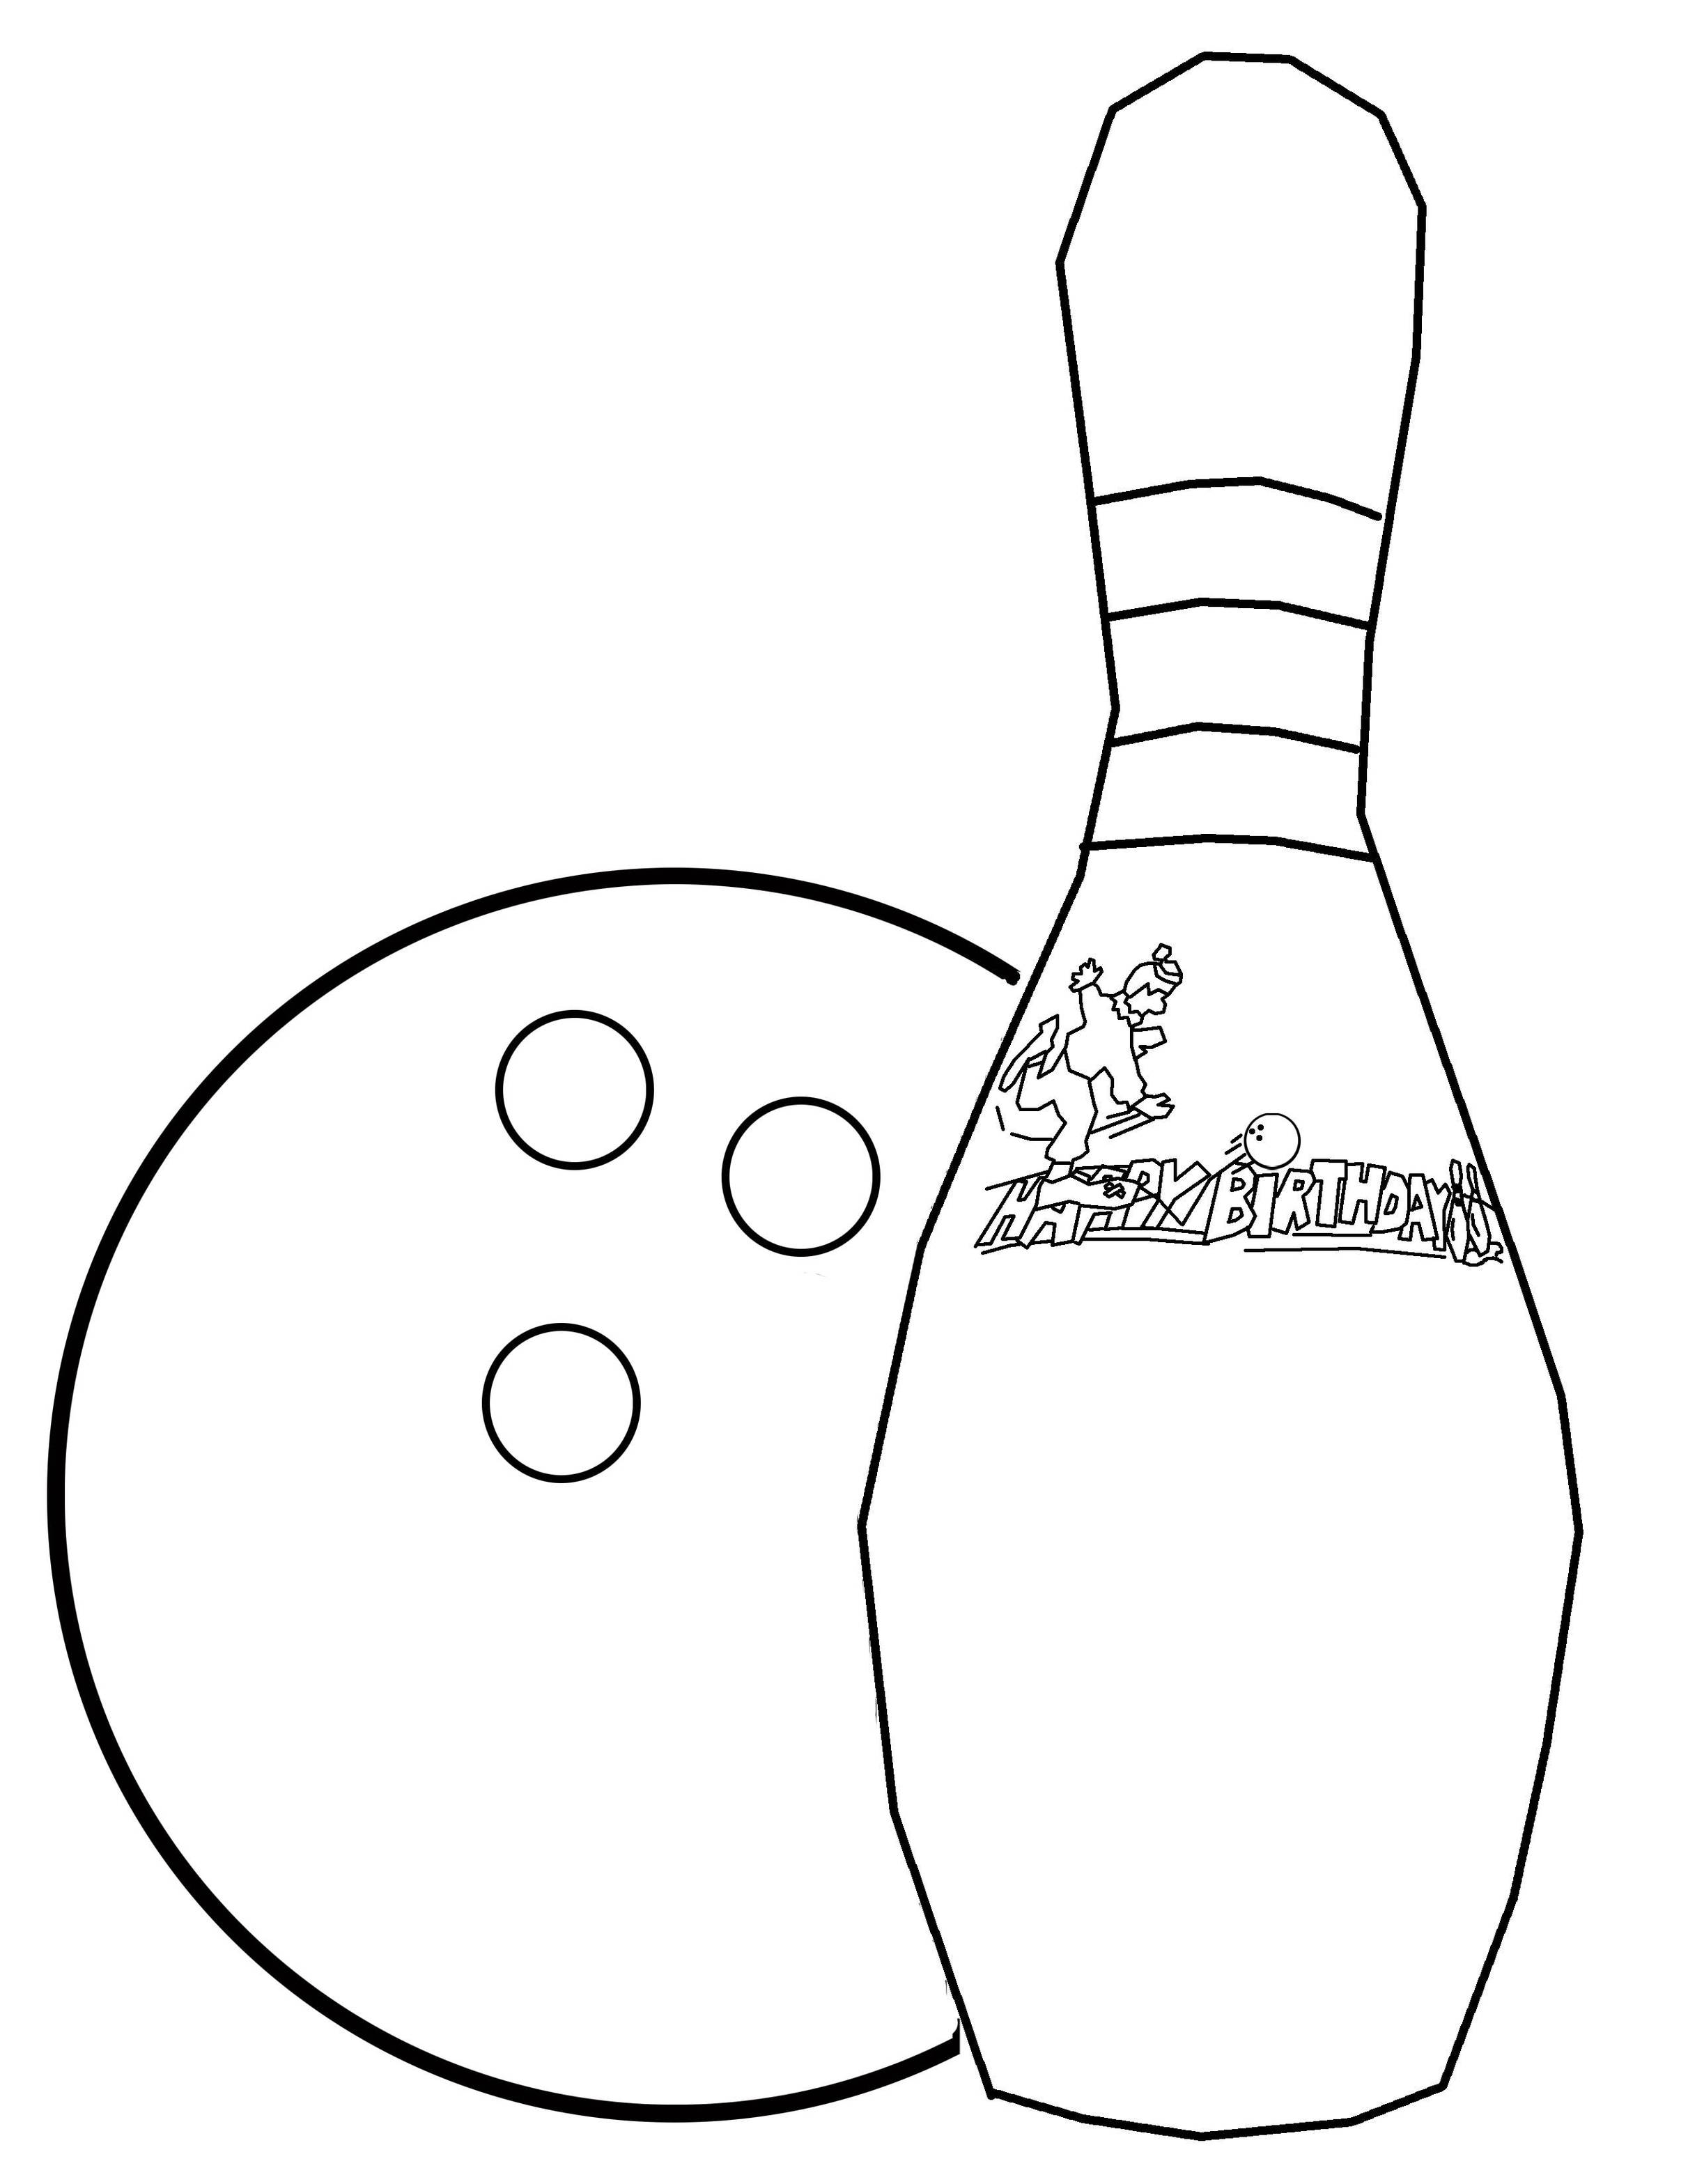 Clip Art Bowling Pin Coloring Page bowling pin colouring sheet clipart best outline free to use clip art resource coloring pages